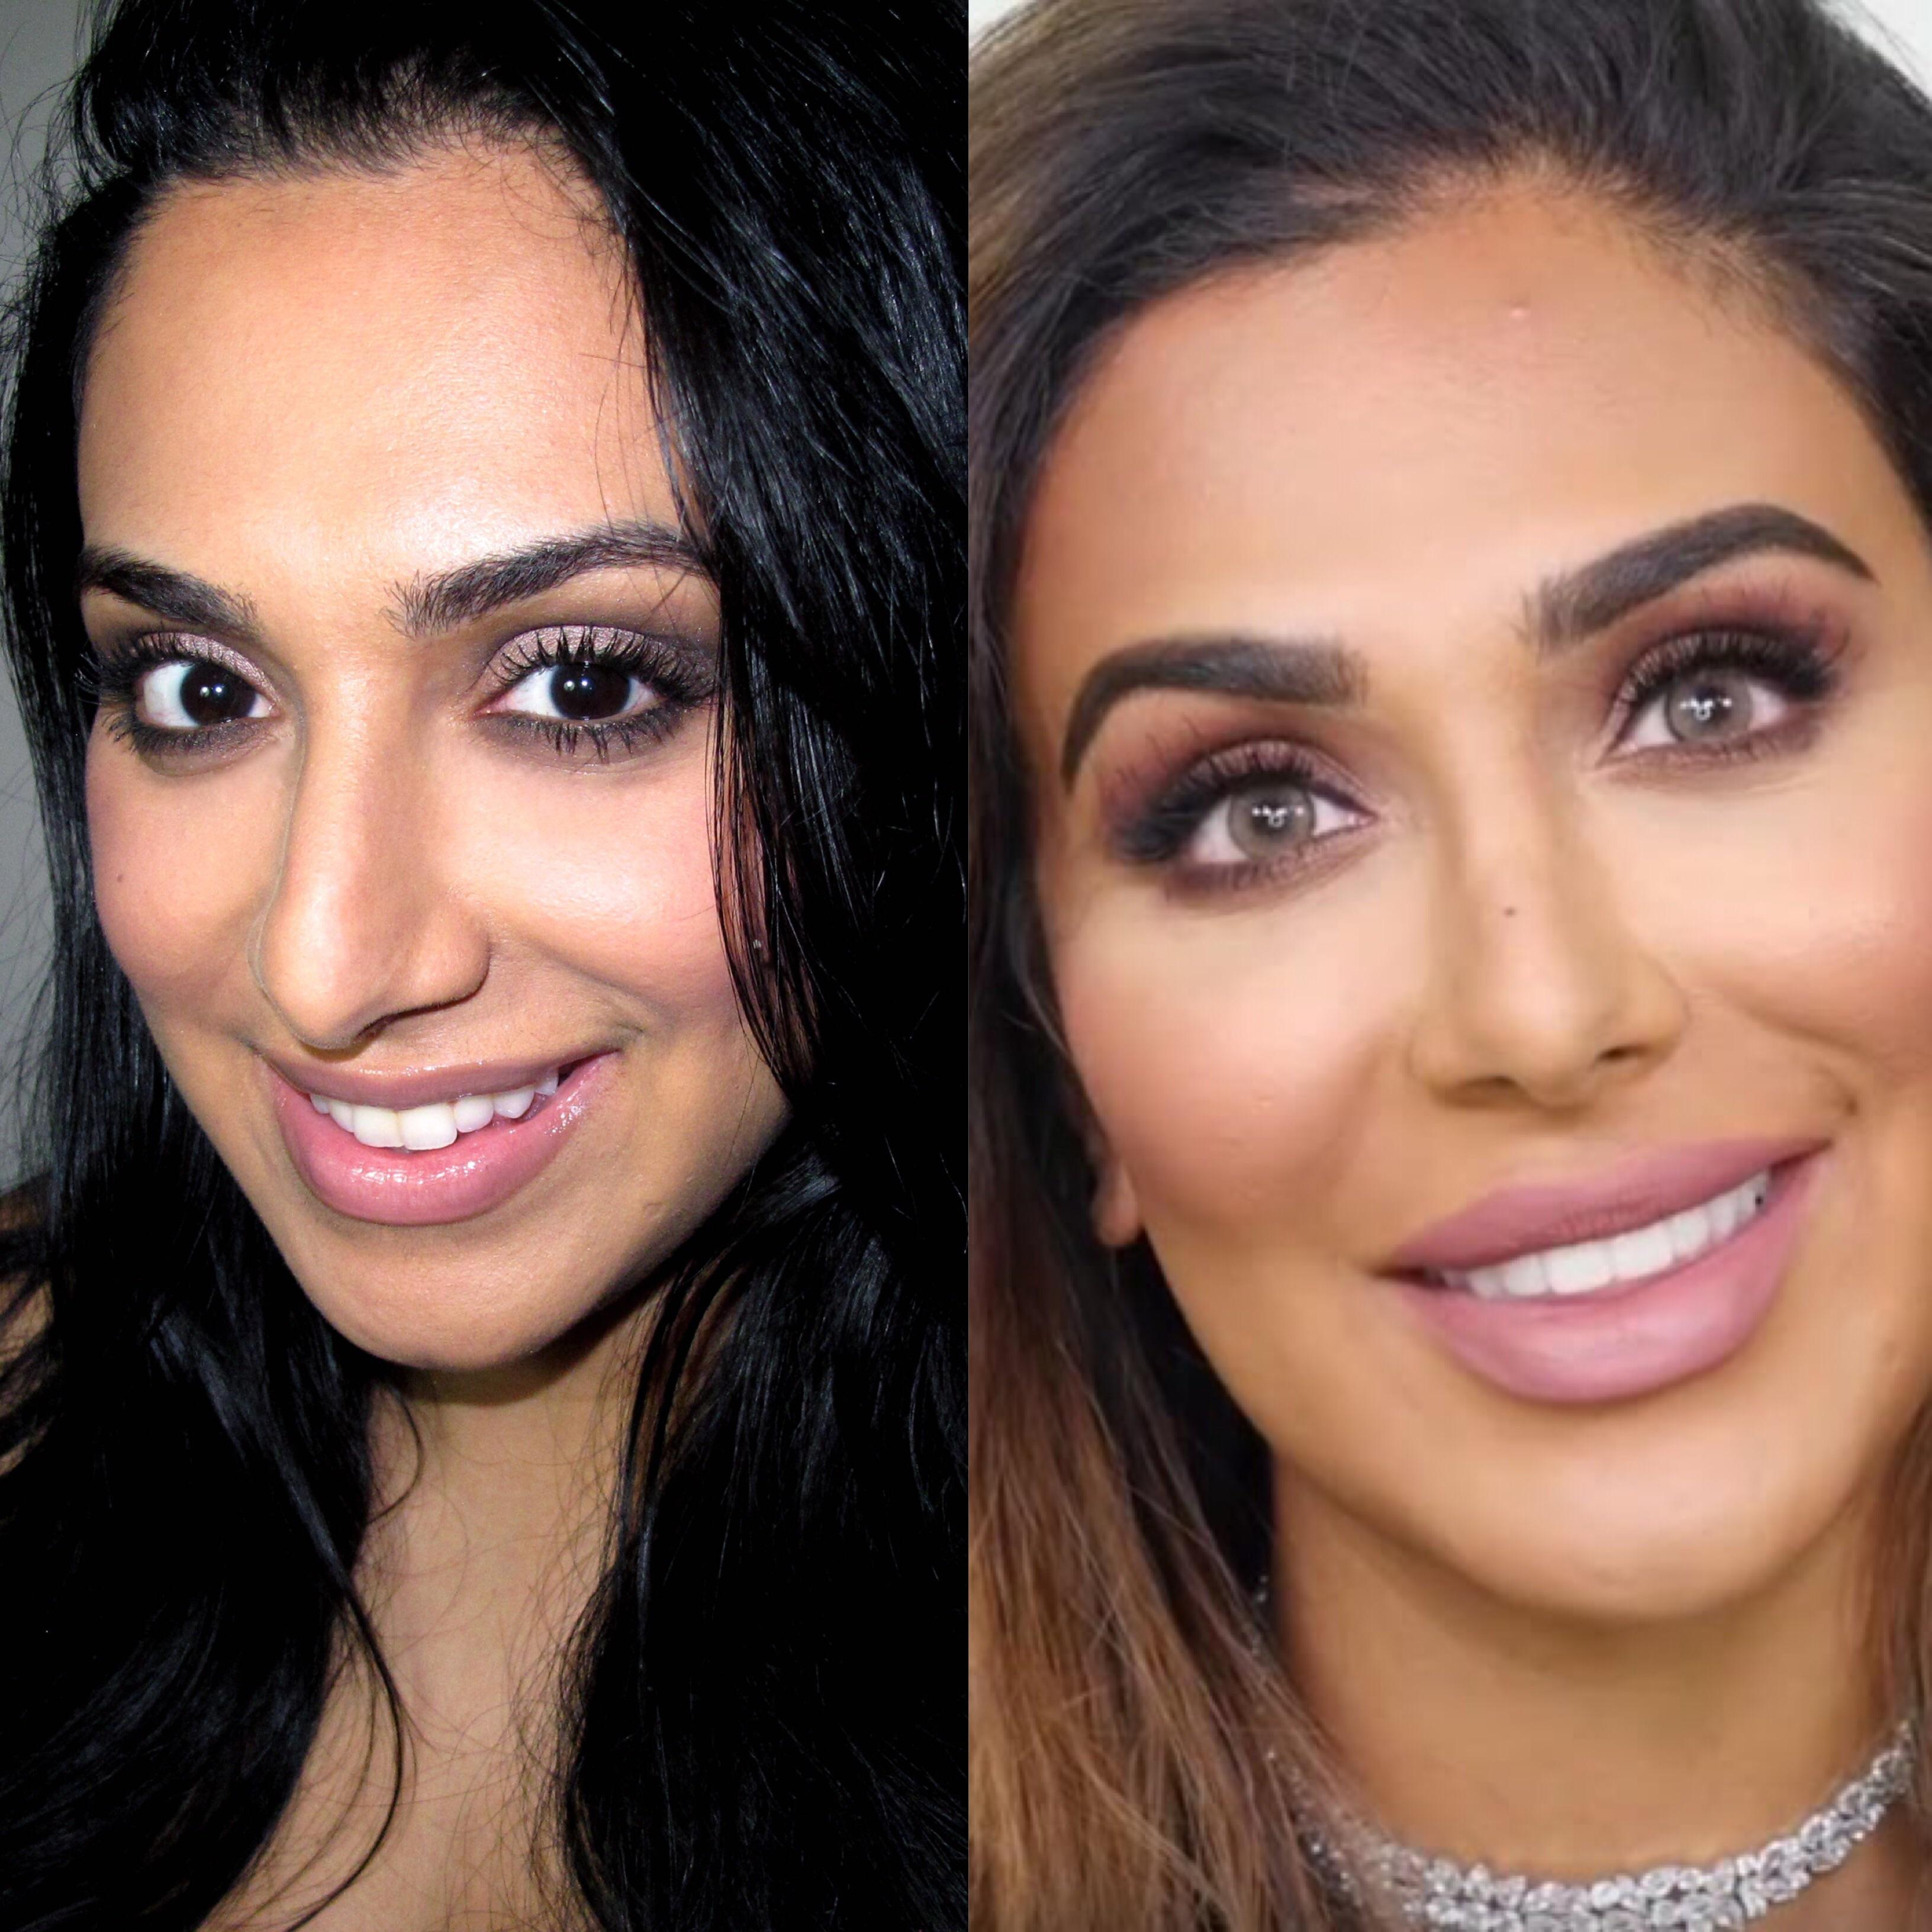 Huda Beauty Before And After Plastic Surgery photo - 1